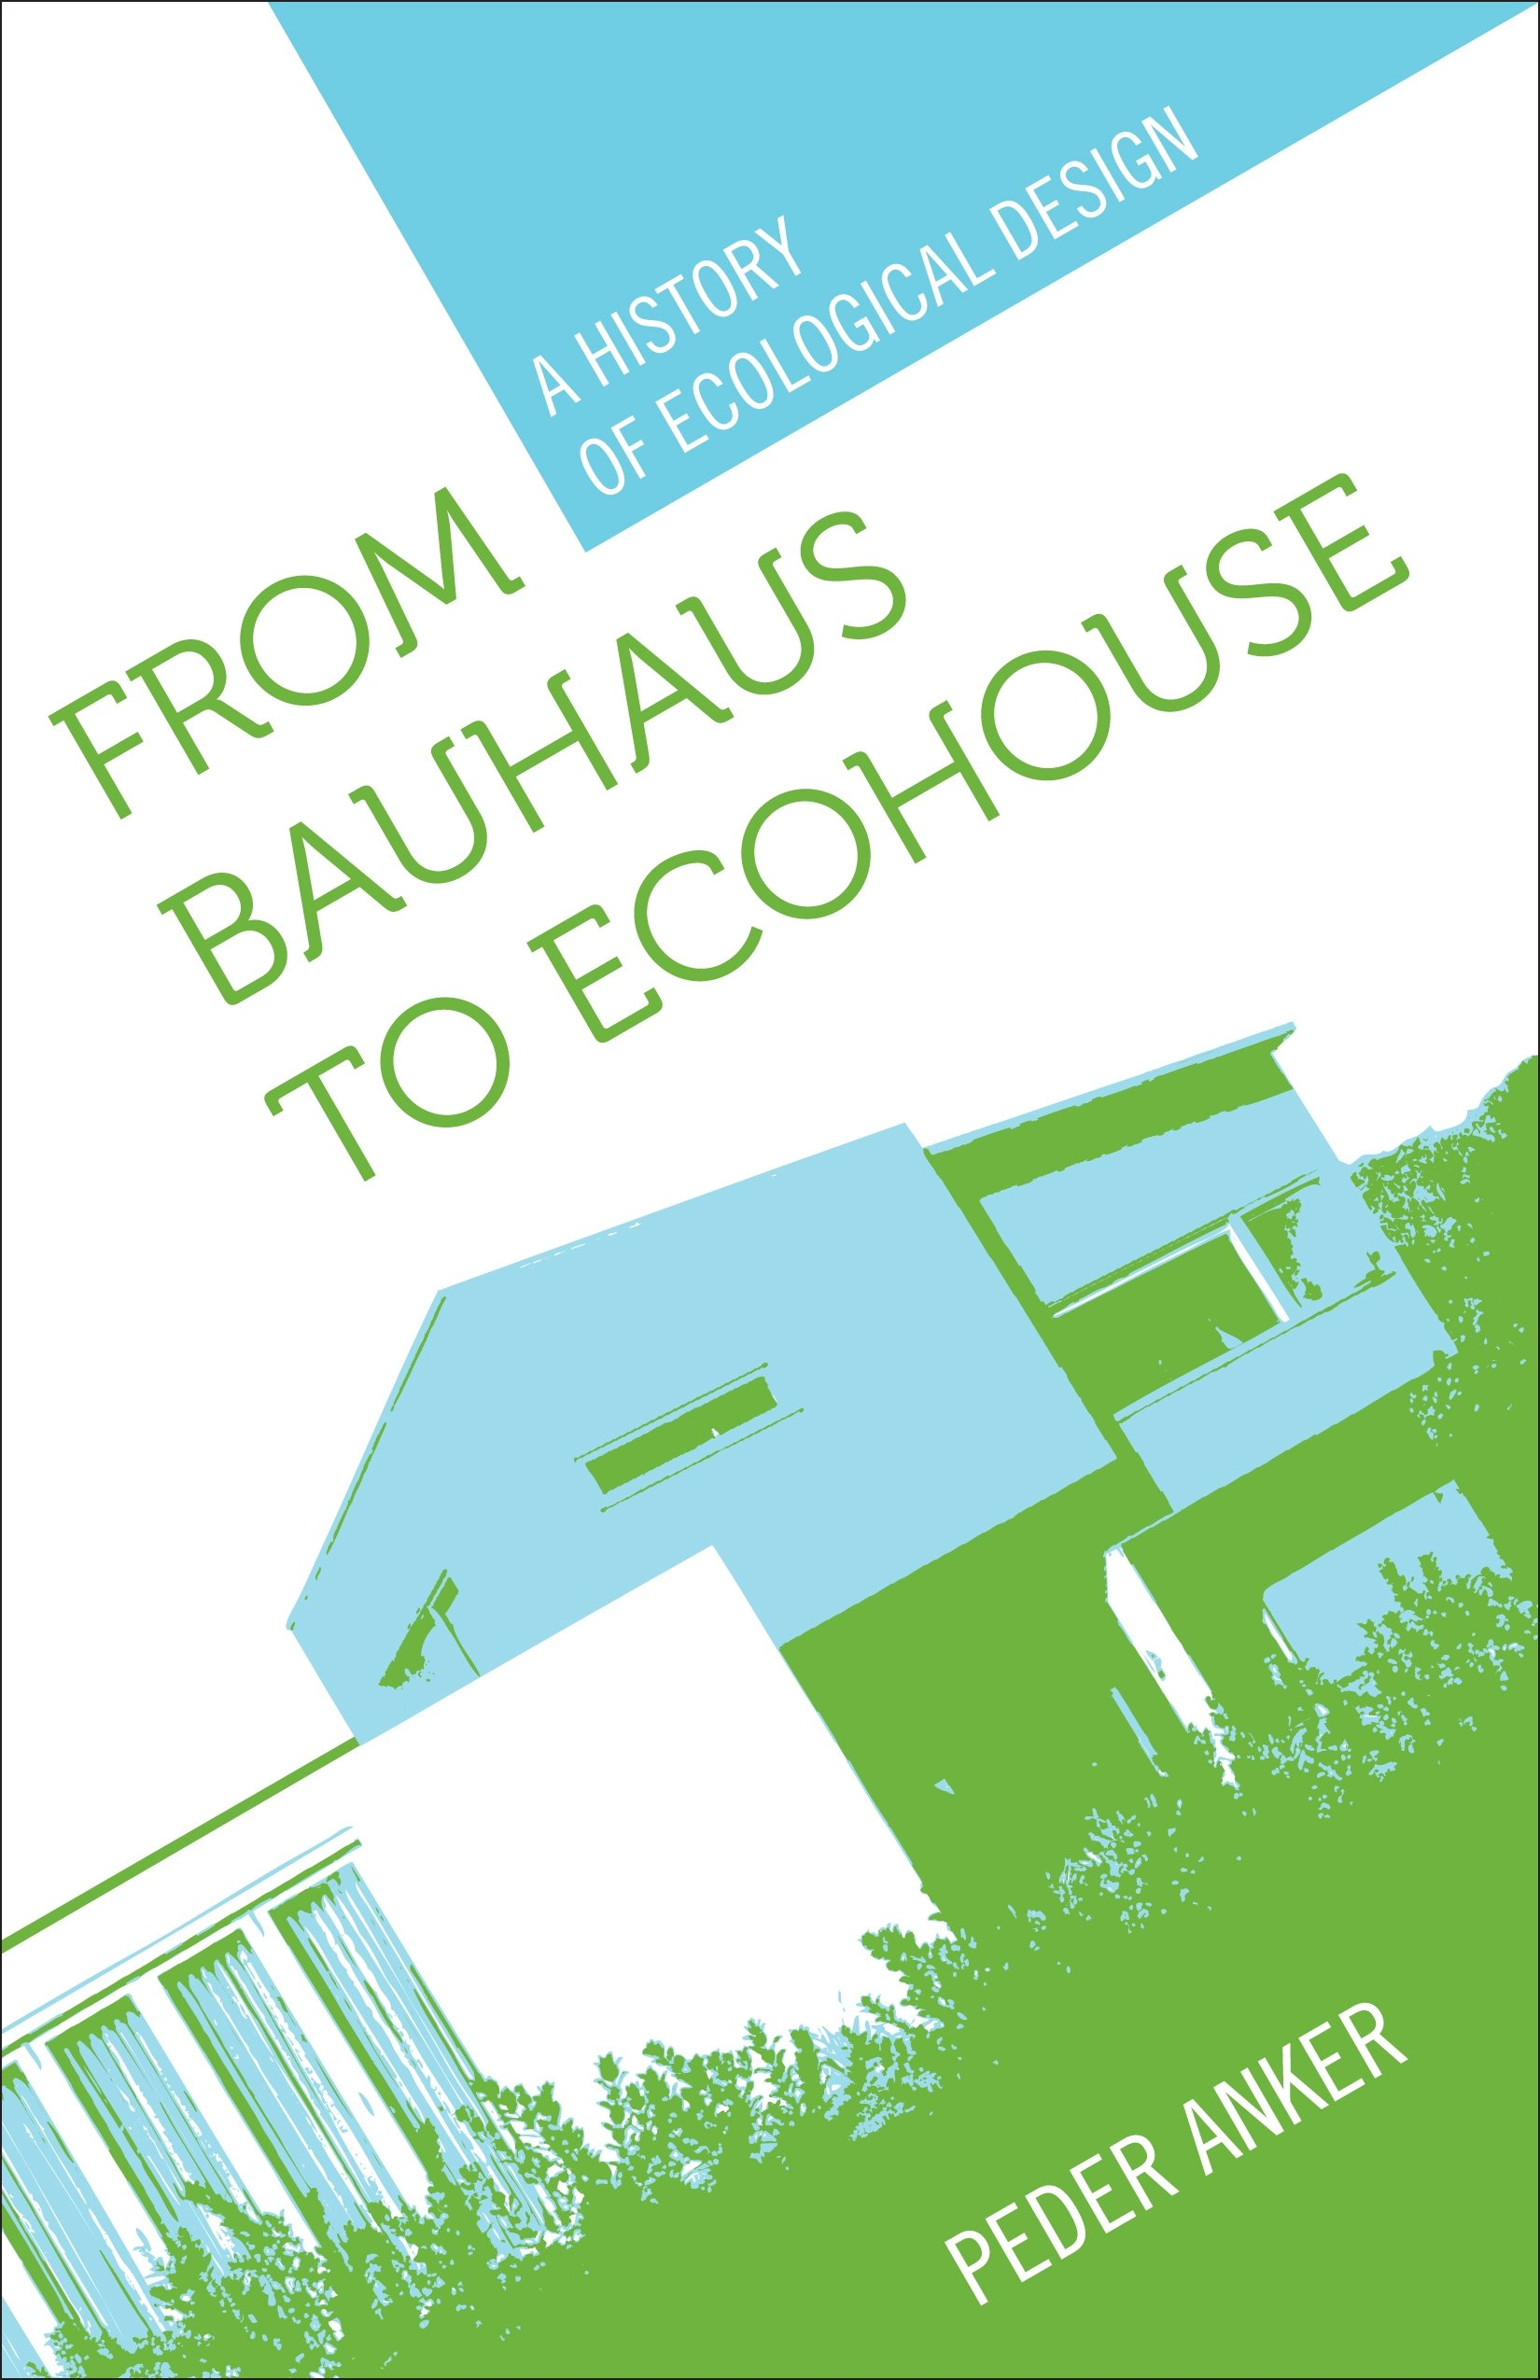 From Bauhaus To Ecohouse  A History Of Ecological Design